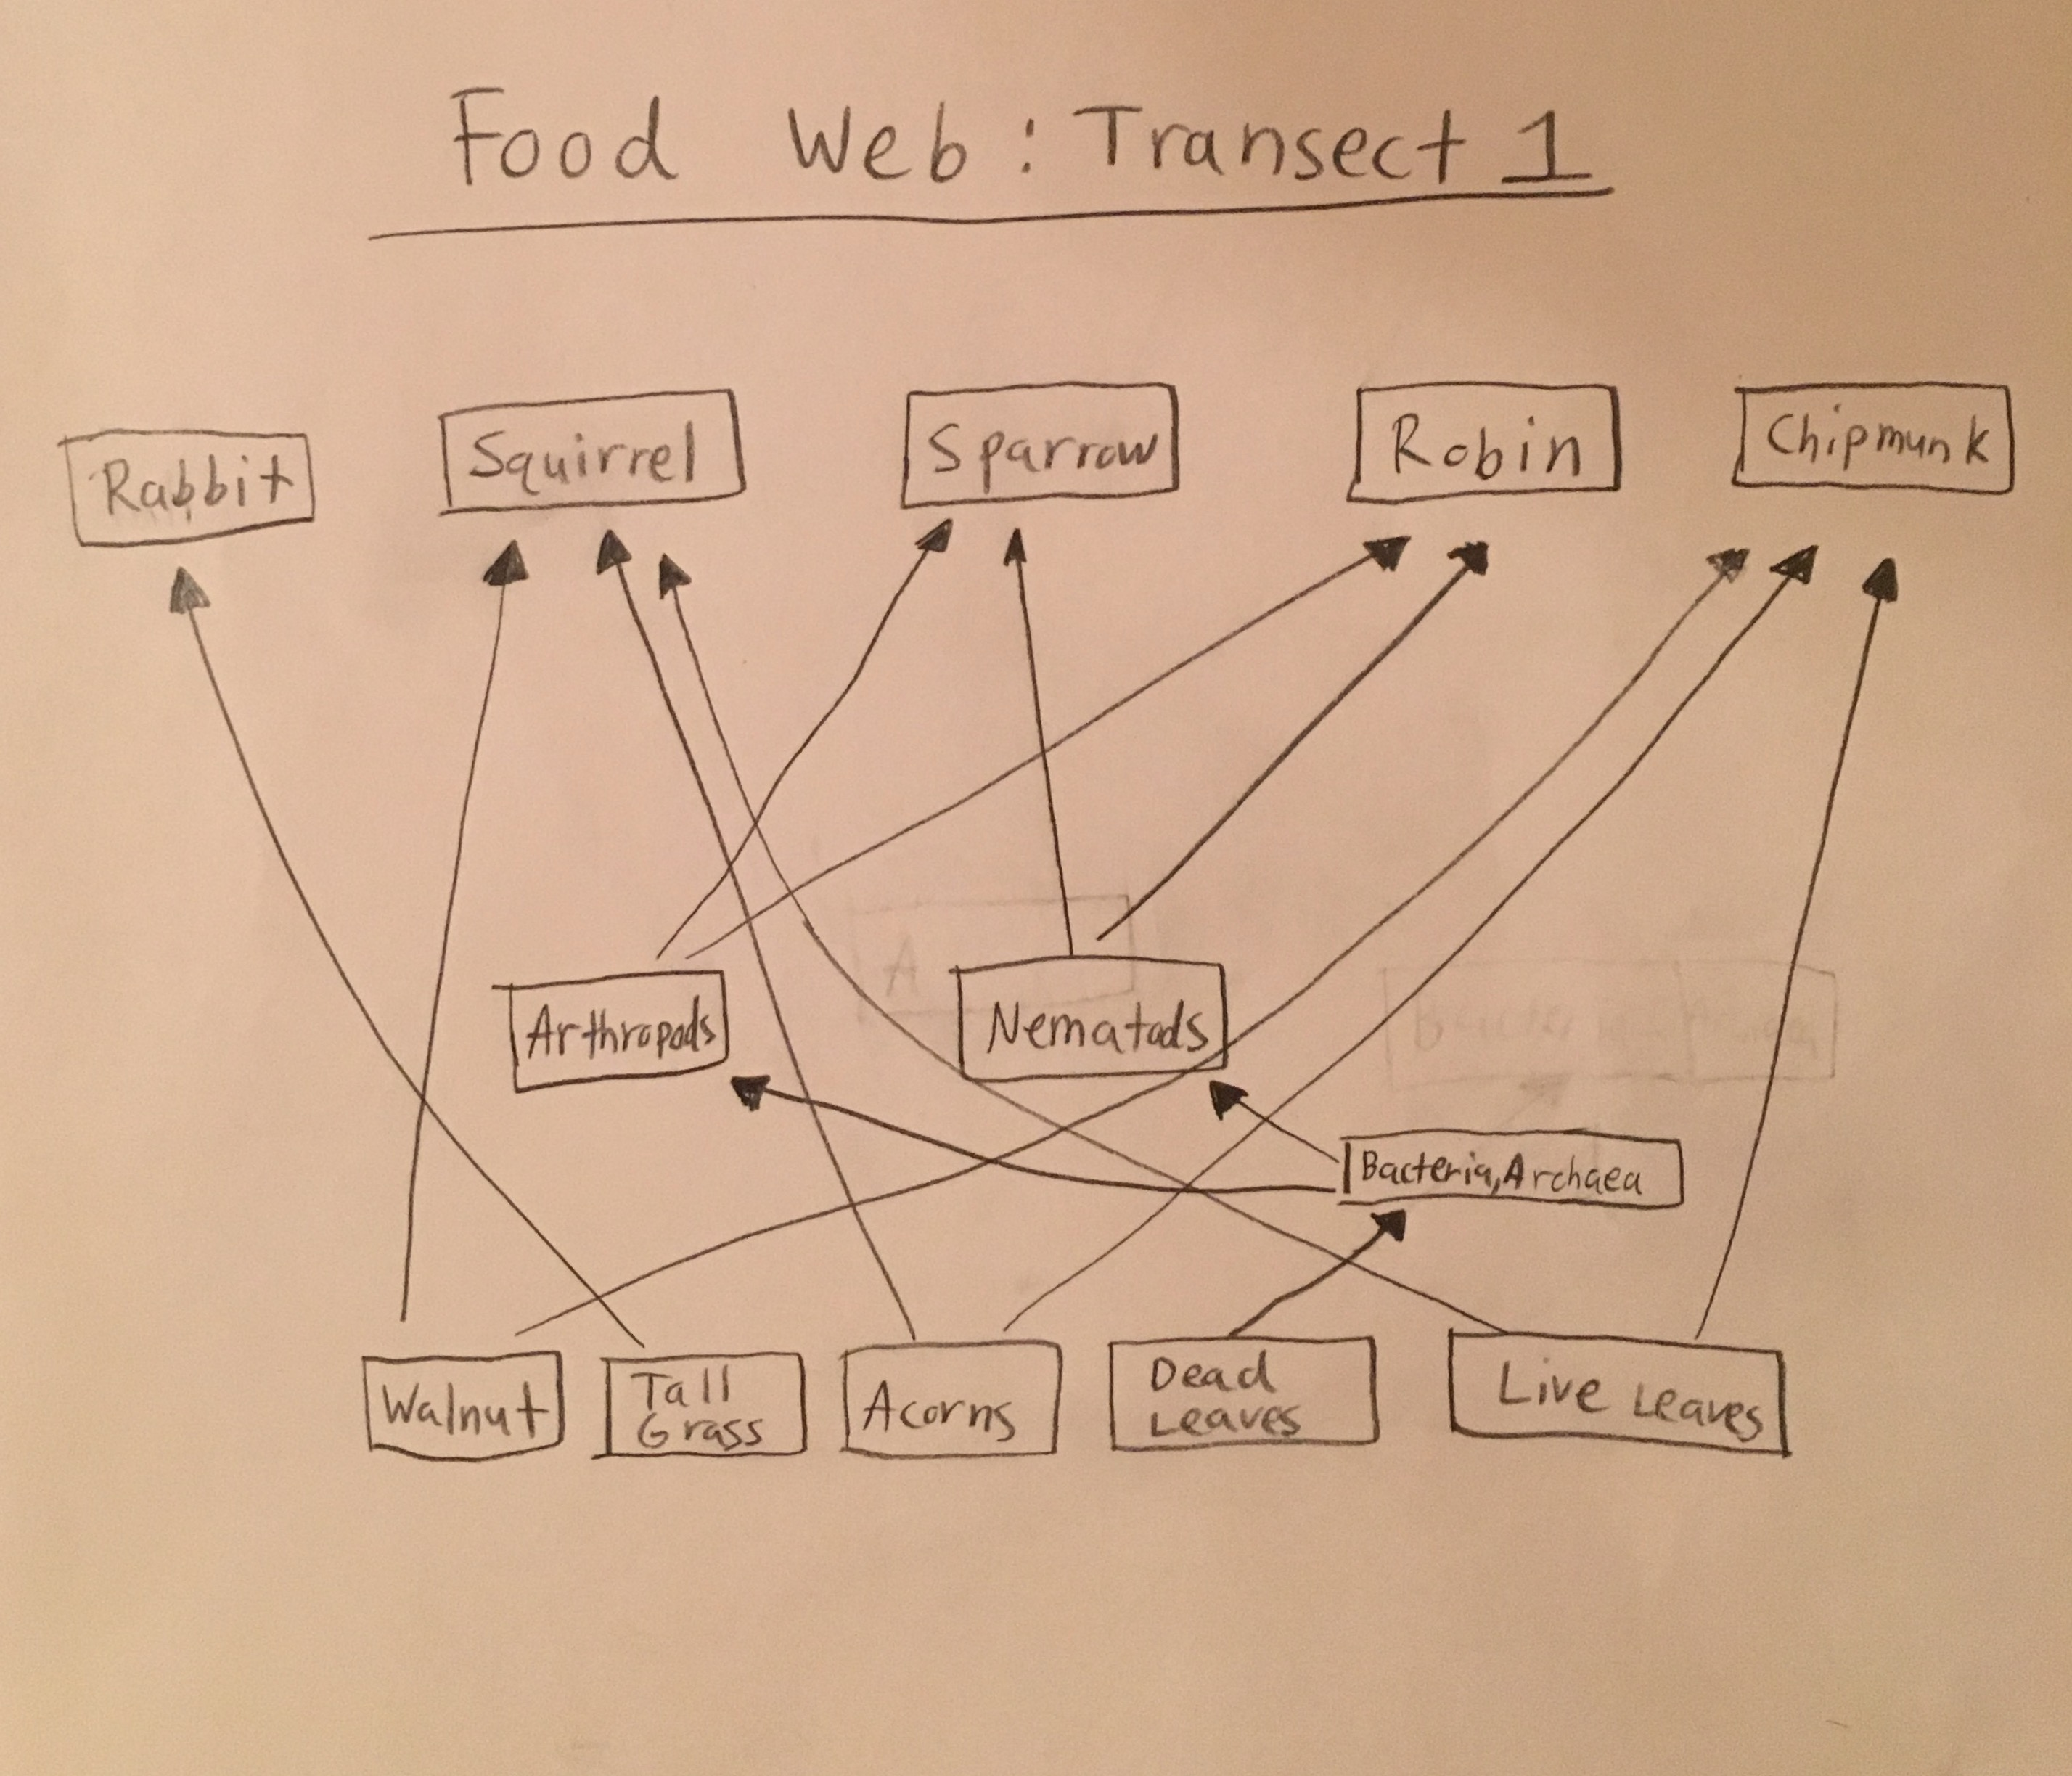 Useryale jt friedmannotebookbiology 210 at au openwetware food web for transect sciox Choice Image